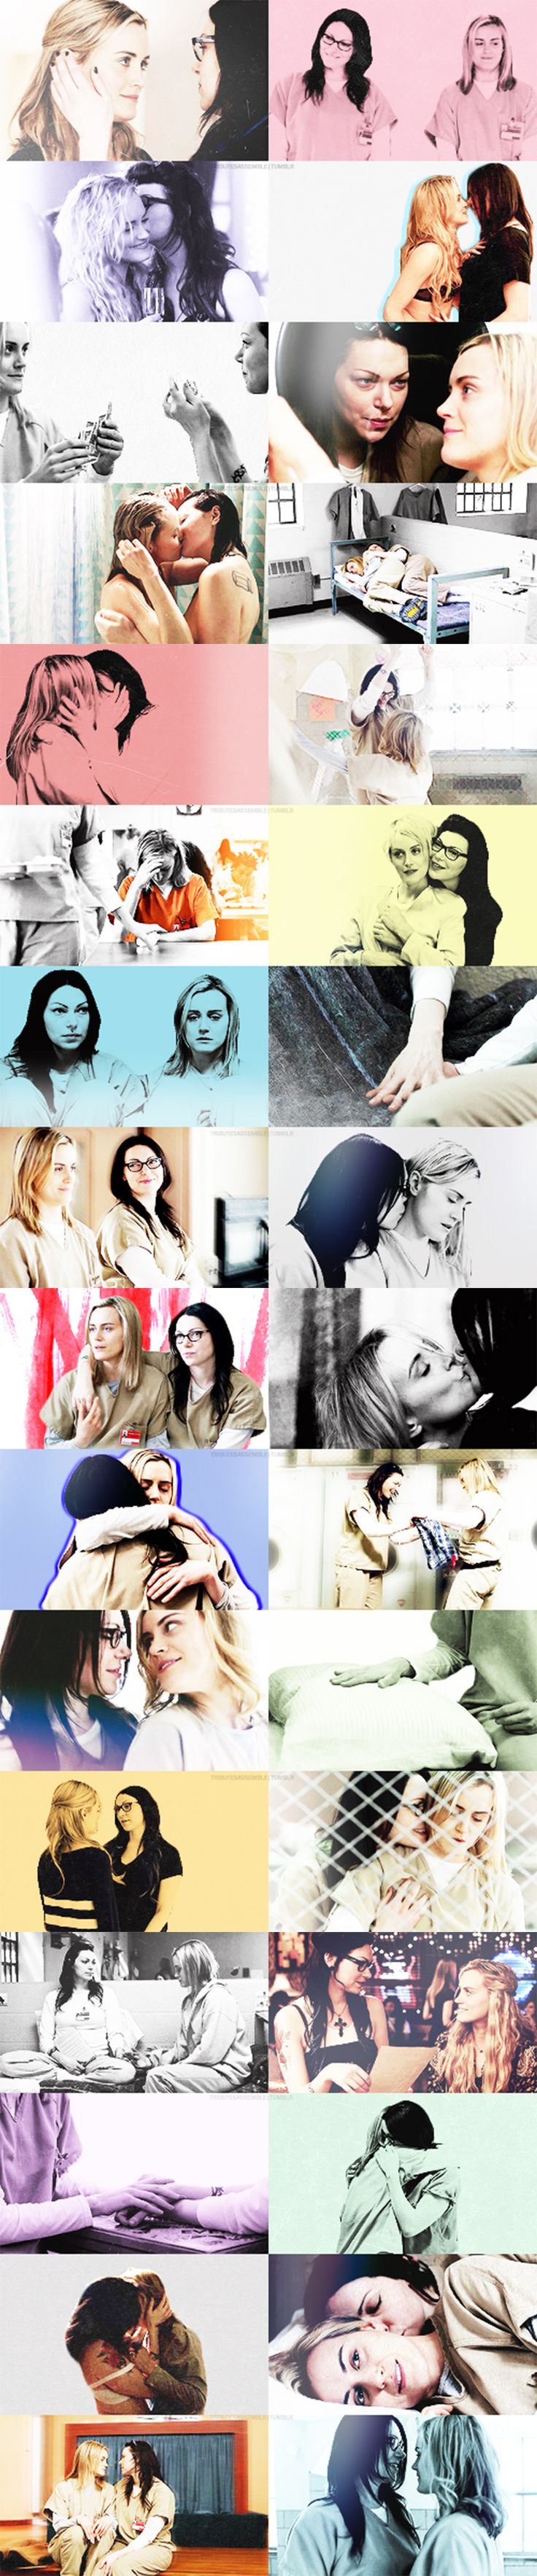 Vauseman - Piper Chapman - Alex Vause - Orange is the new black - OITNB